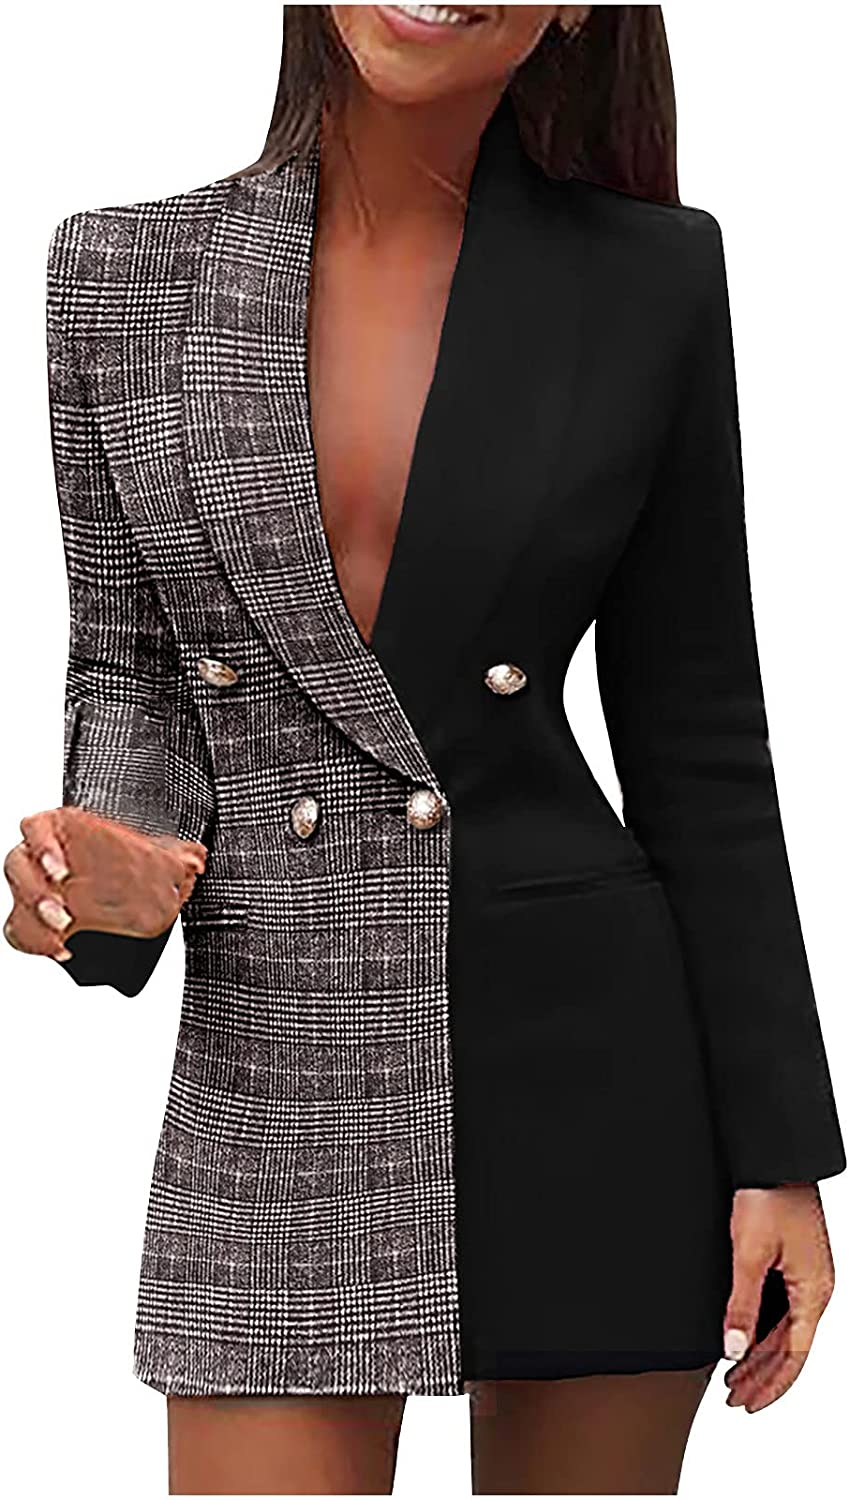 Blazer Dress for Outlet sale feature Women Sexy Deep Block Neck Directly managed store Color Casual V Coats